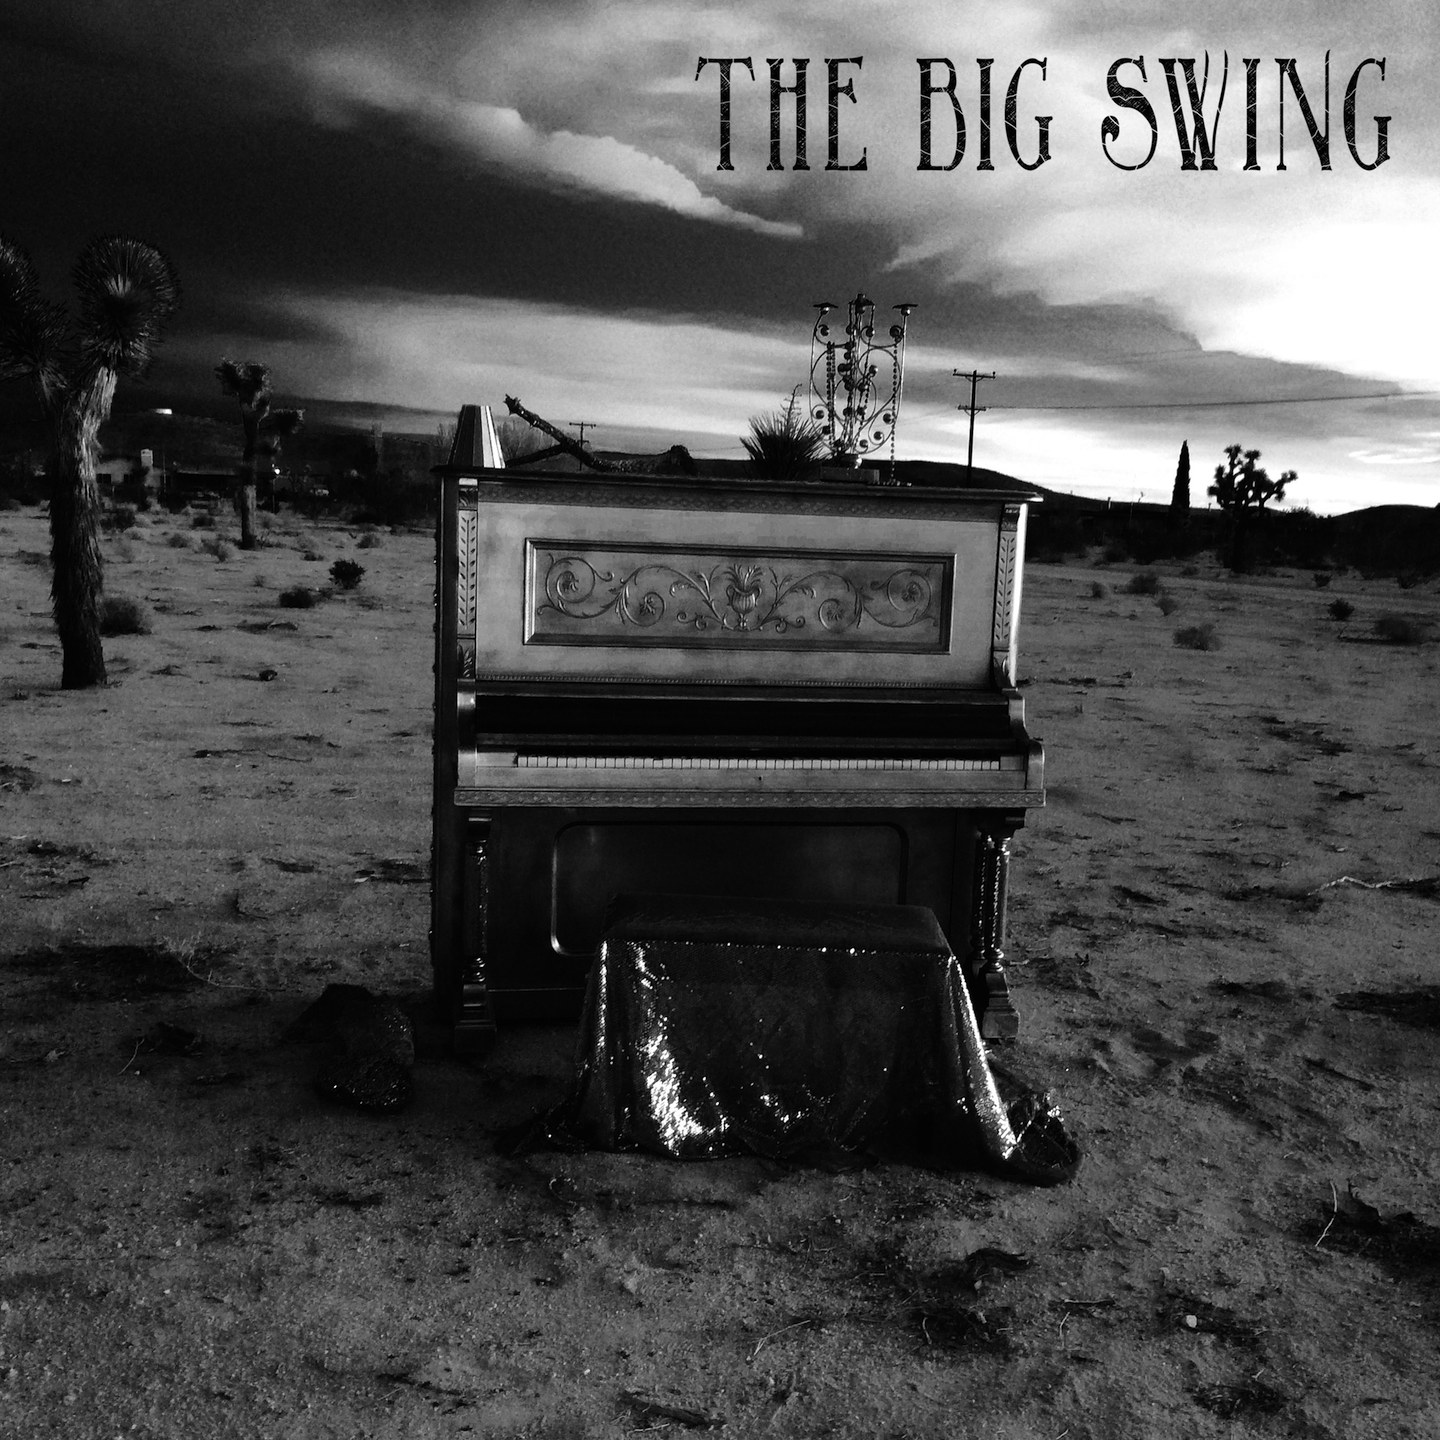 The Big Swing